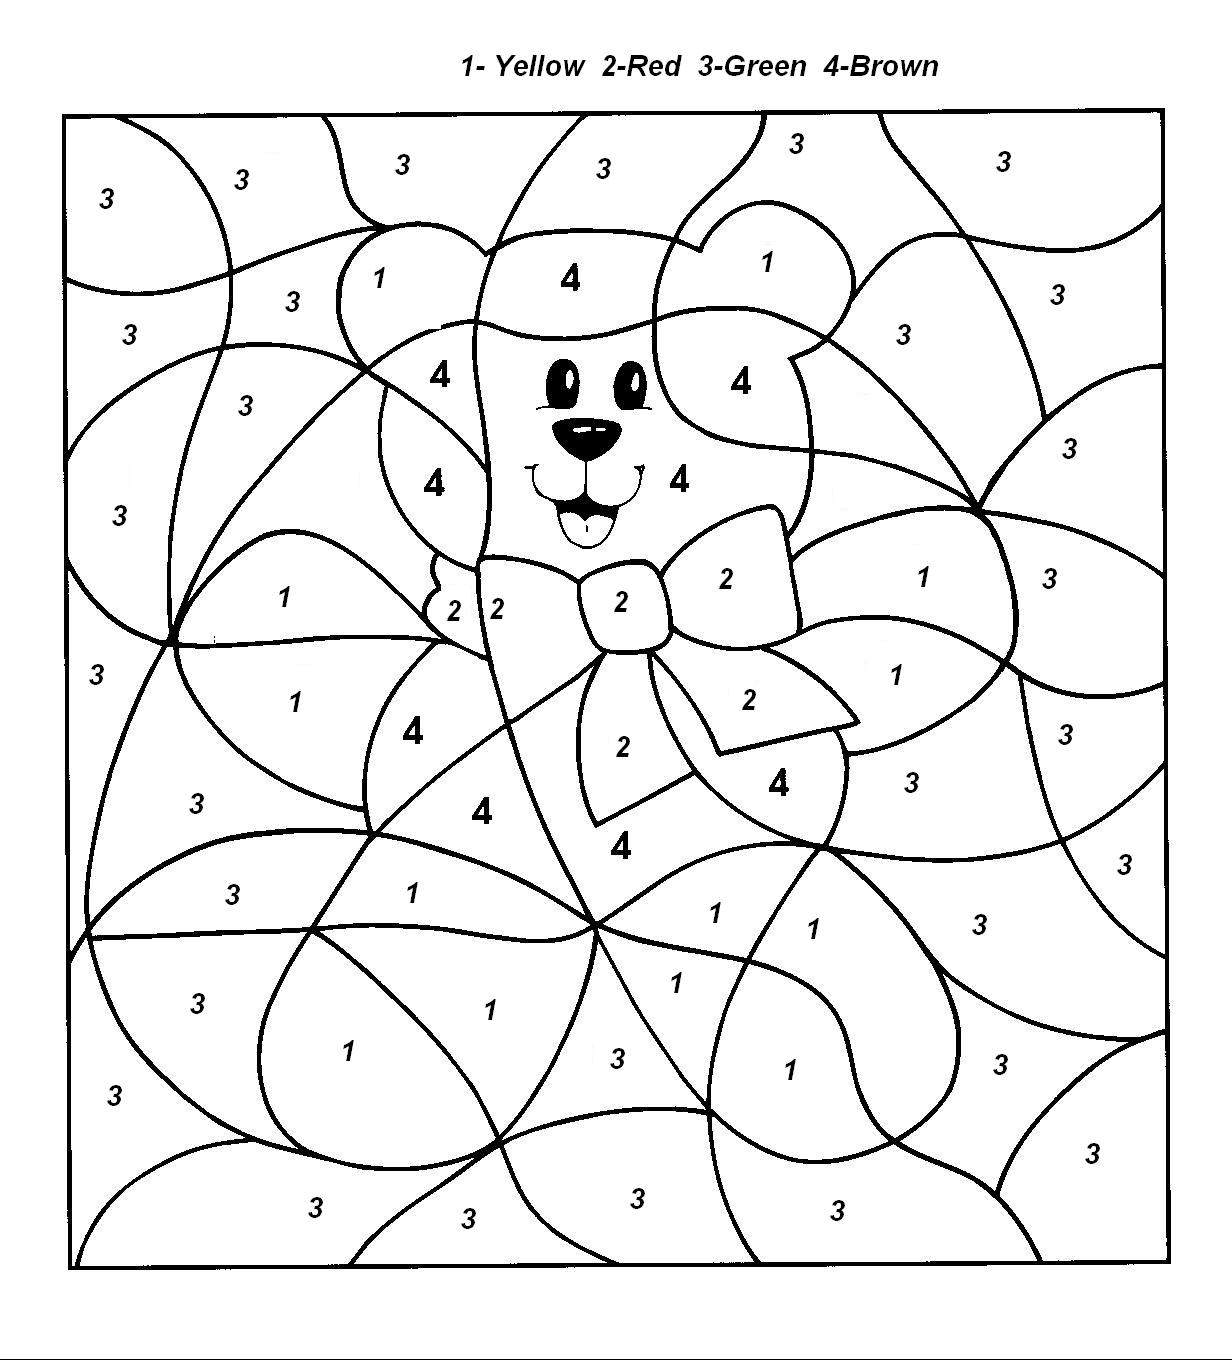 large number coloring pages color by number coloring pages to download and print for free large pages coloring number